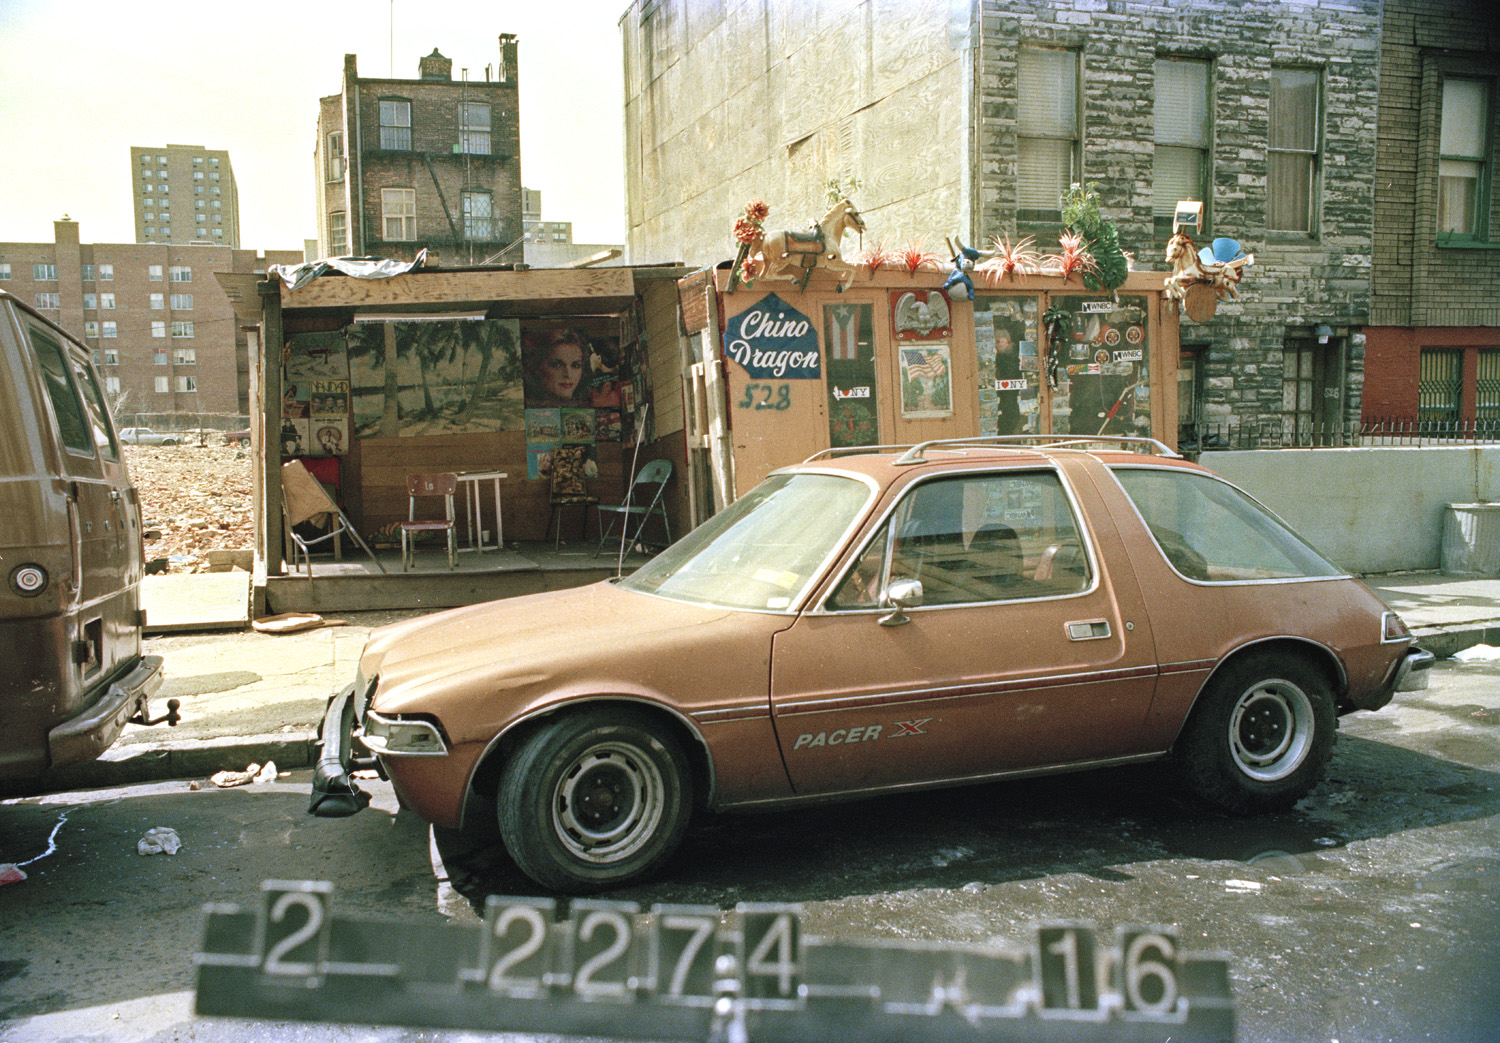 528 E. 148th Street, South Bronx, ca. 1985. DOF Tax Photograph Collection, NYC Municipal Archives.